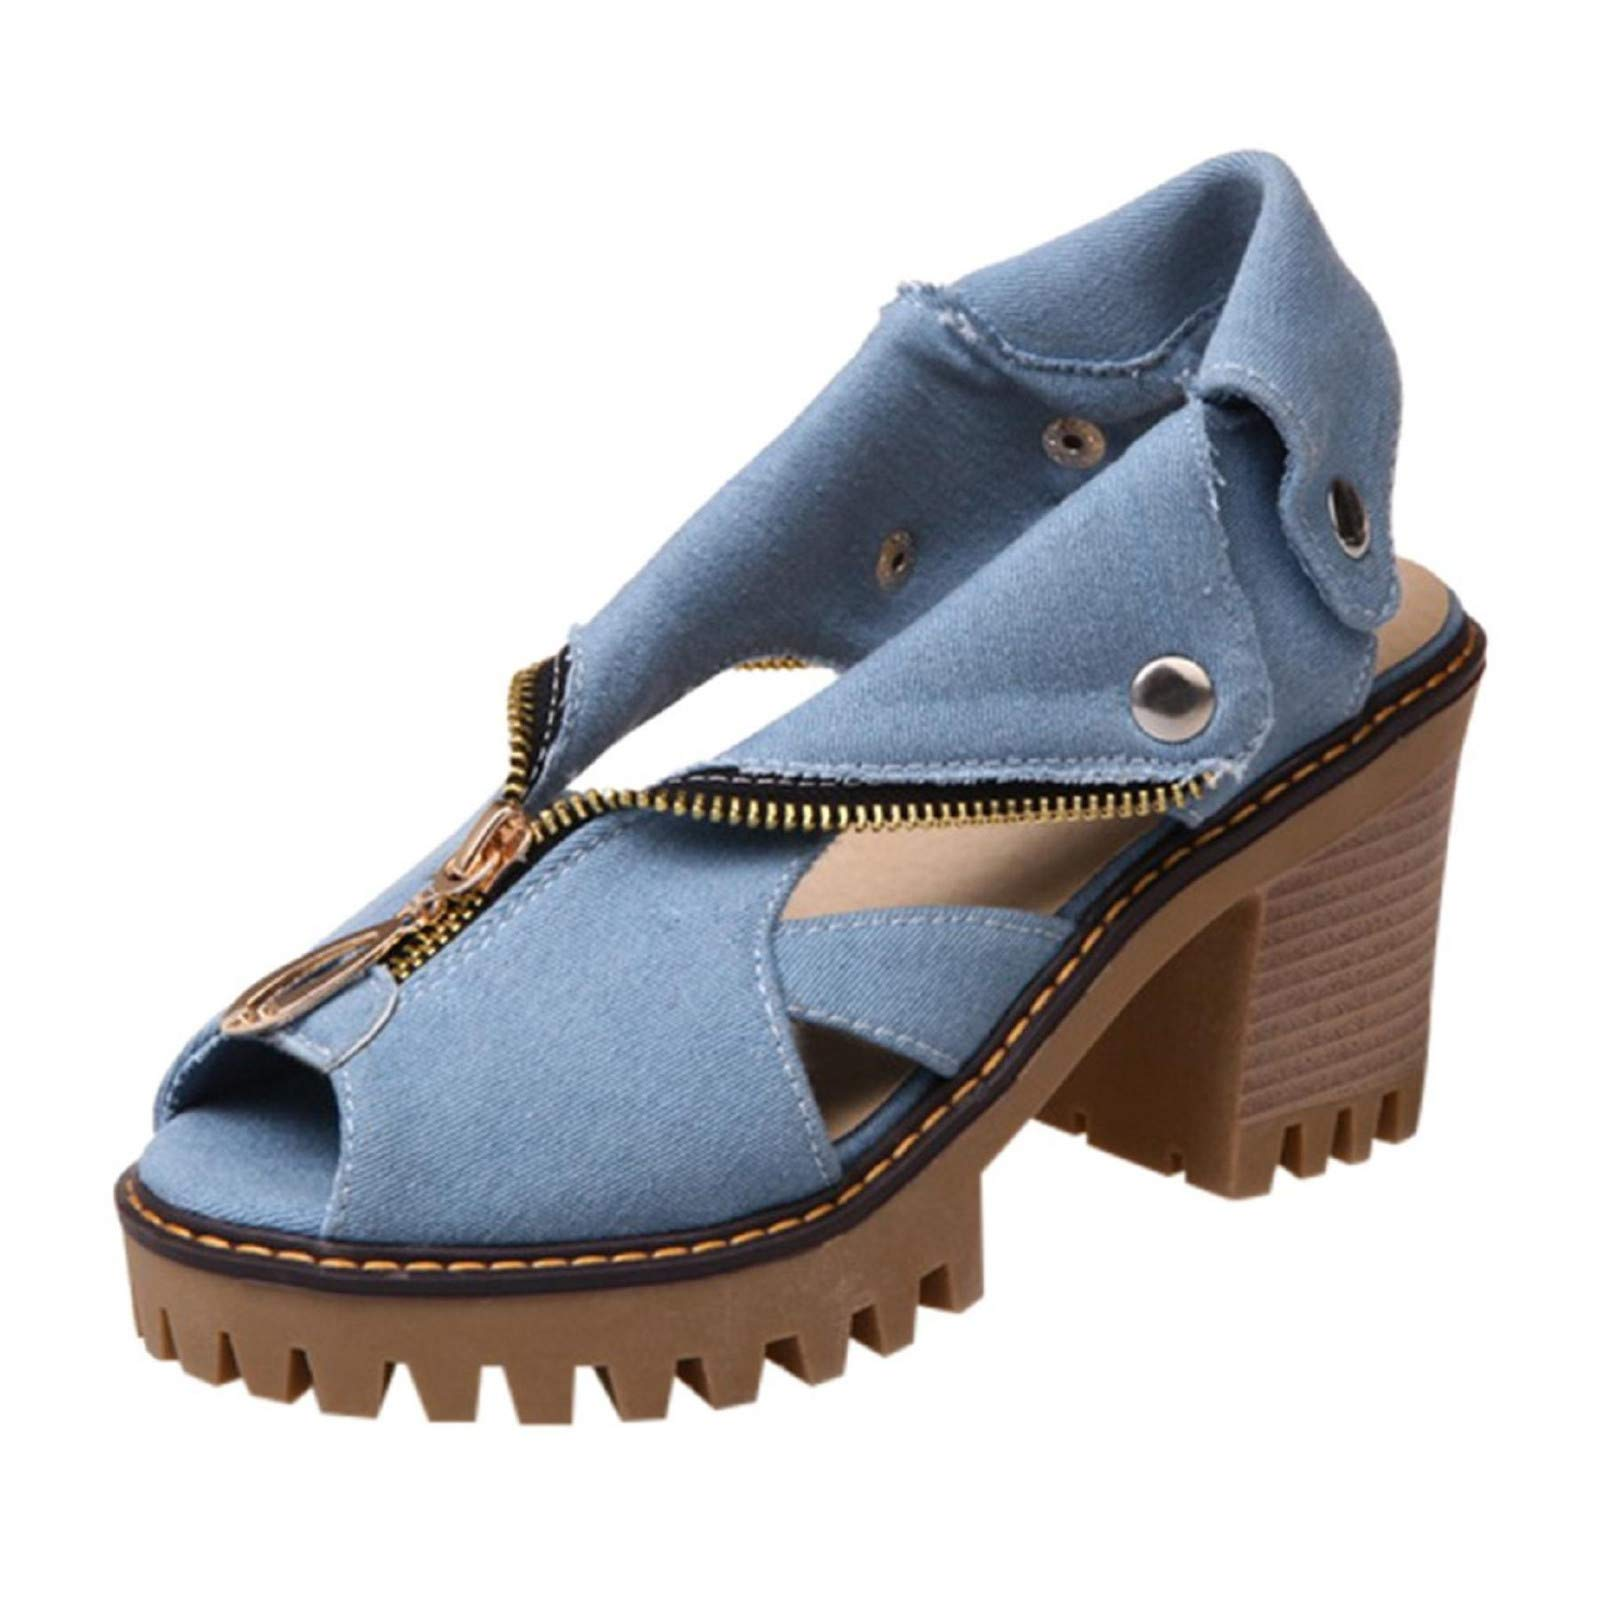 Womens Peep Toe Mules Platform Block Chunky Heeled Sandals Roll up Cuff Denim Sandals with Button